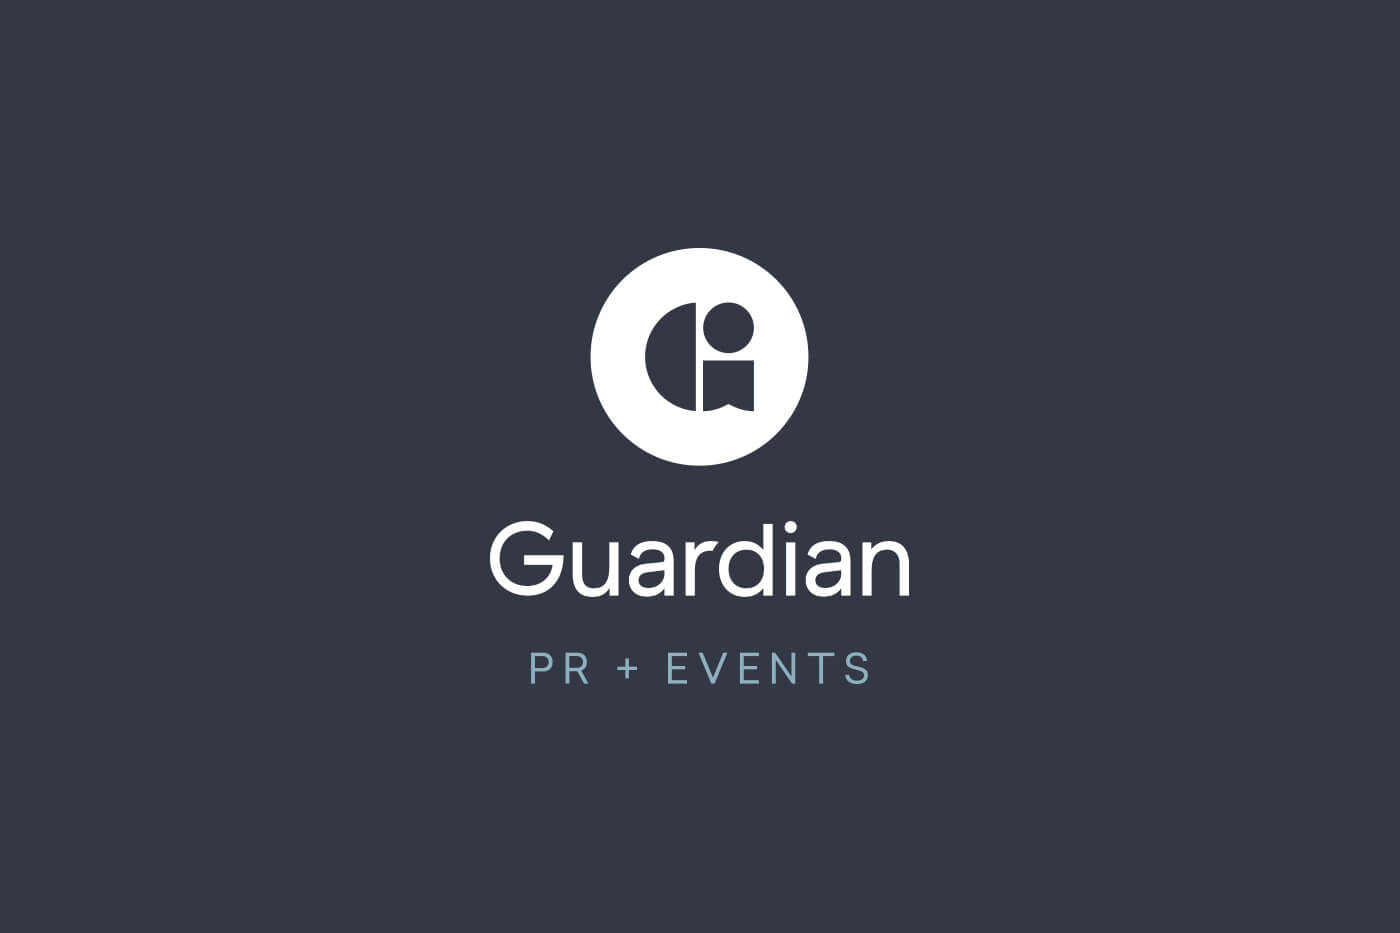 Guardian Public Relations and Events firm in Atlanta logo design